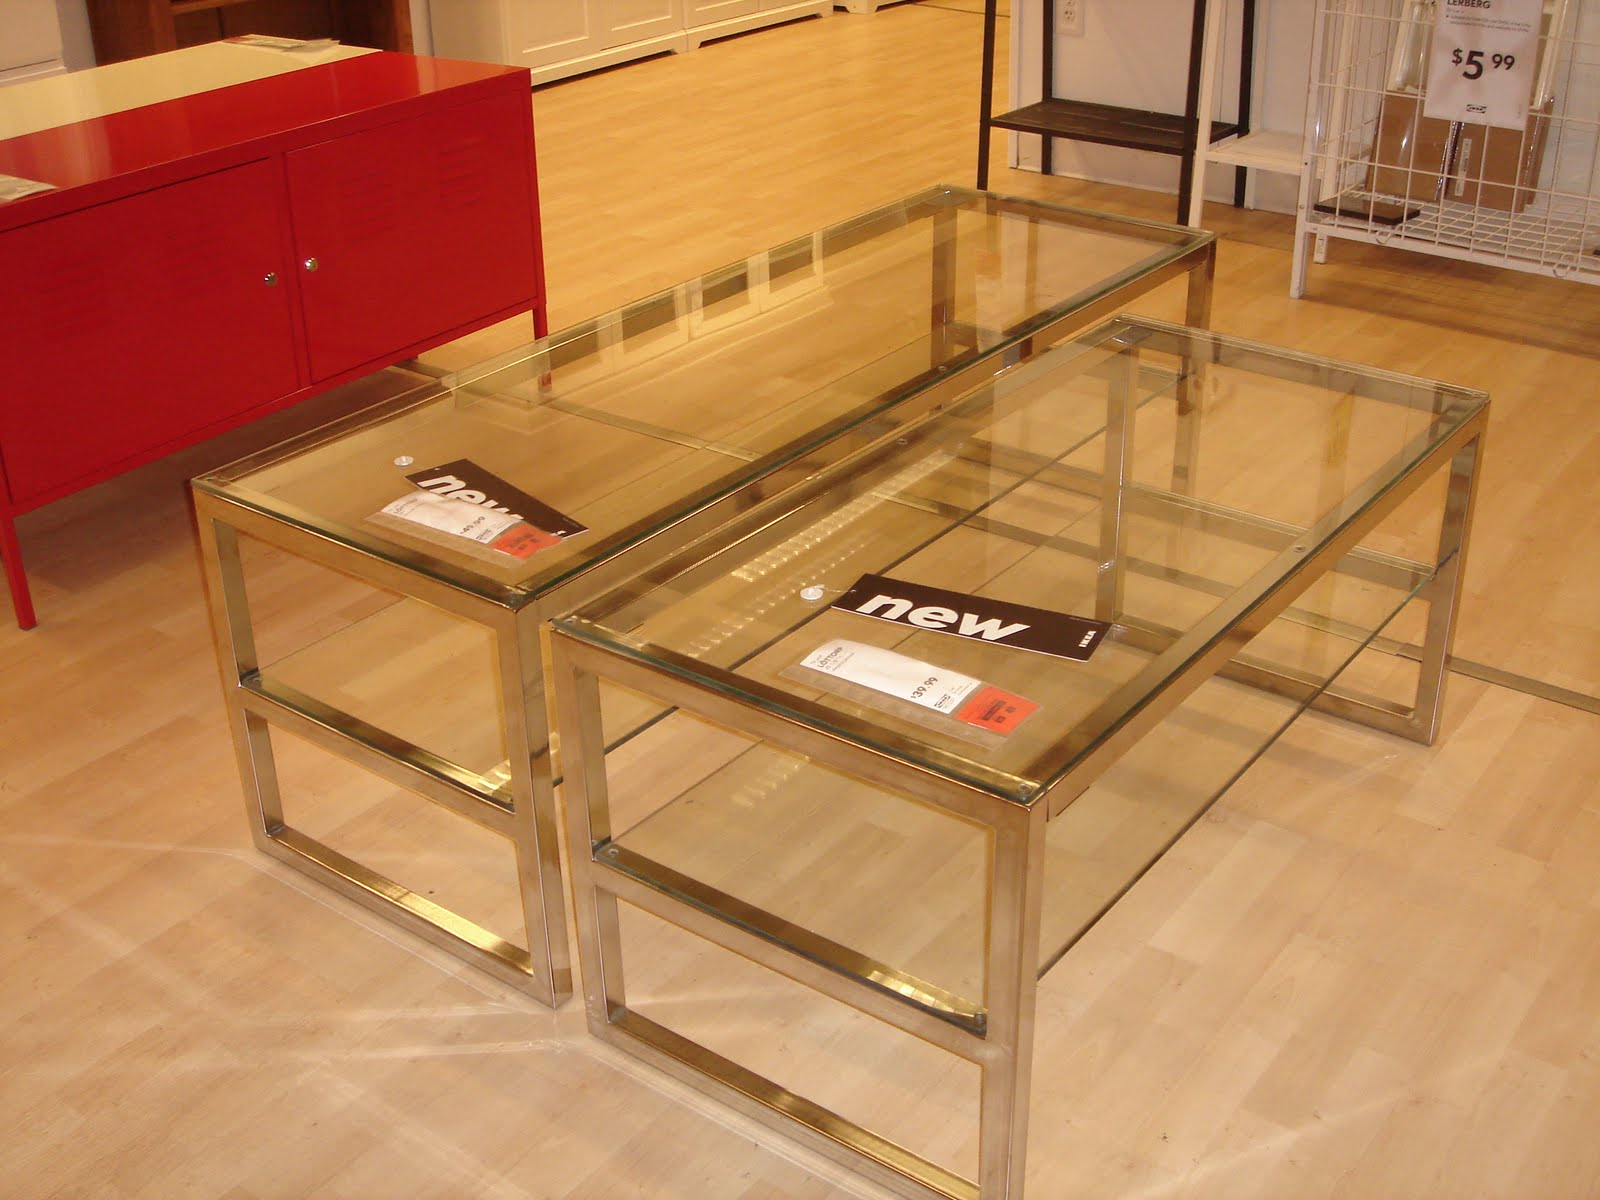 coffee-tables-at-ikea-is-this-lovely-recycled-wood-iron-and-pine-shape-ensures-that-this-piece-will-make-a-statement (Image 7 of 10)